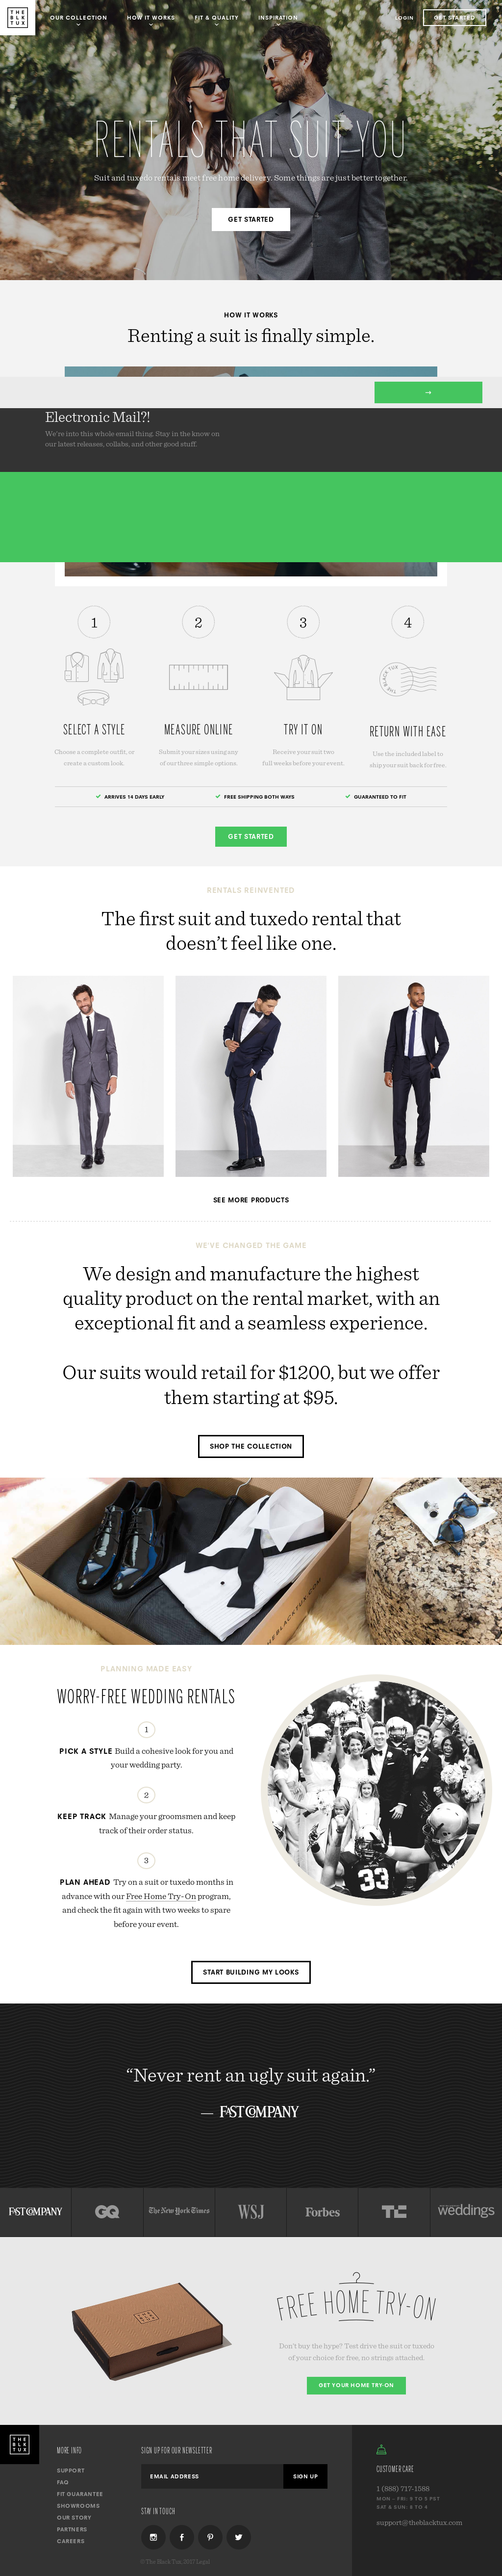 c7f01730d11 The Black Tux Competitors, Revenue and Employees - Owler Company Profile